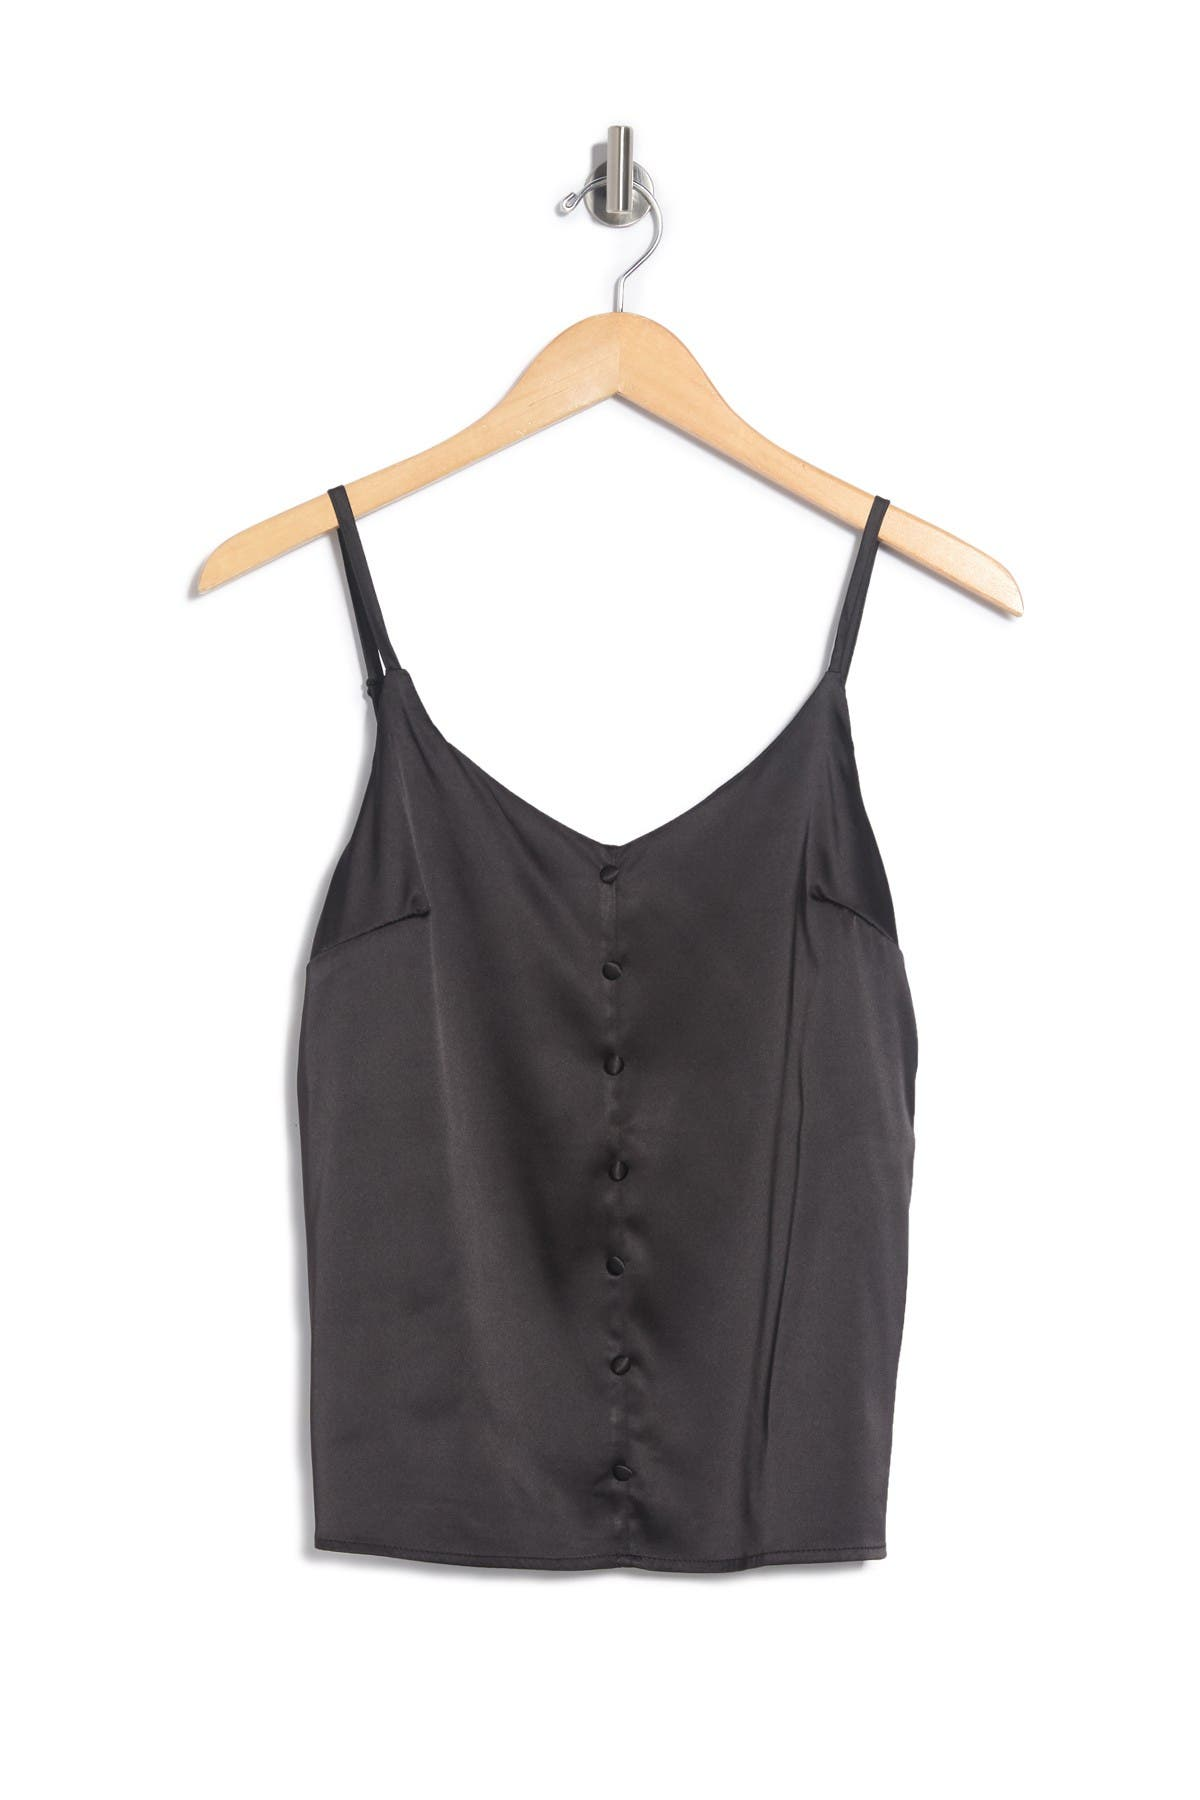 Image of Abound Button Front Cami Tank Top